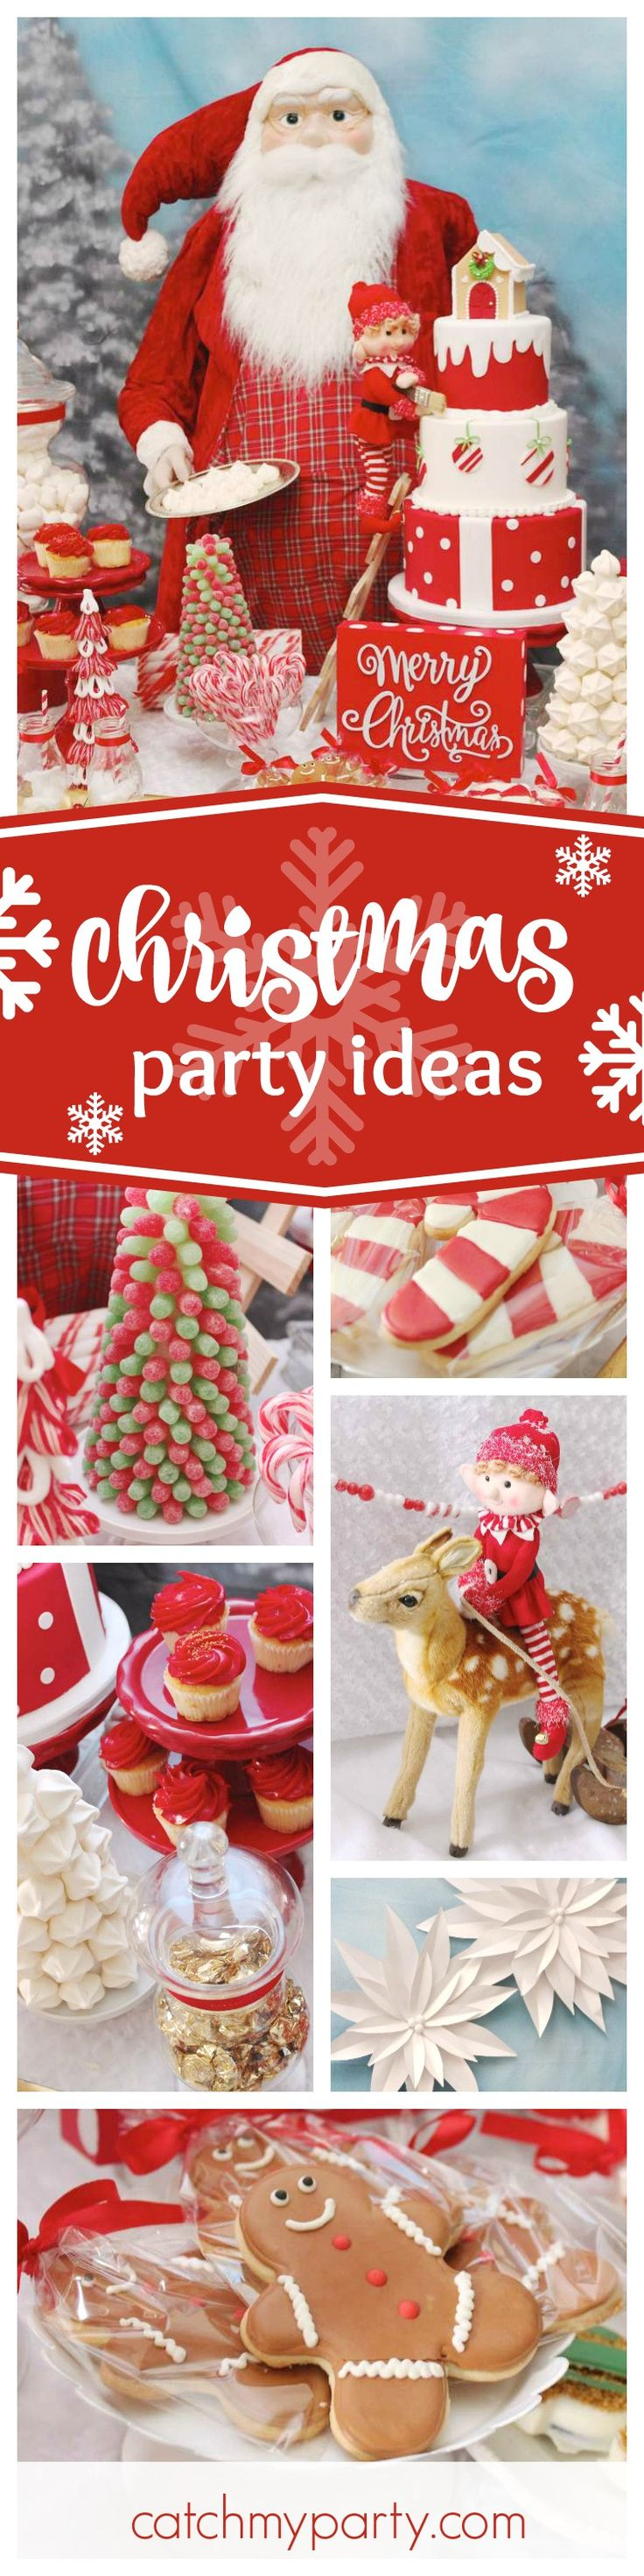 Christmas dessert table decoration ideas - Best 10 Christmas Party Table Ideas On Pinterest Christmas Party Centerpieces Christmas Table Settings And Christmas Decor